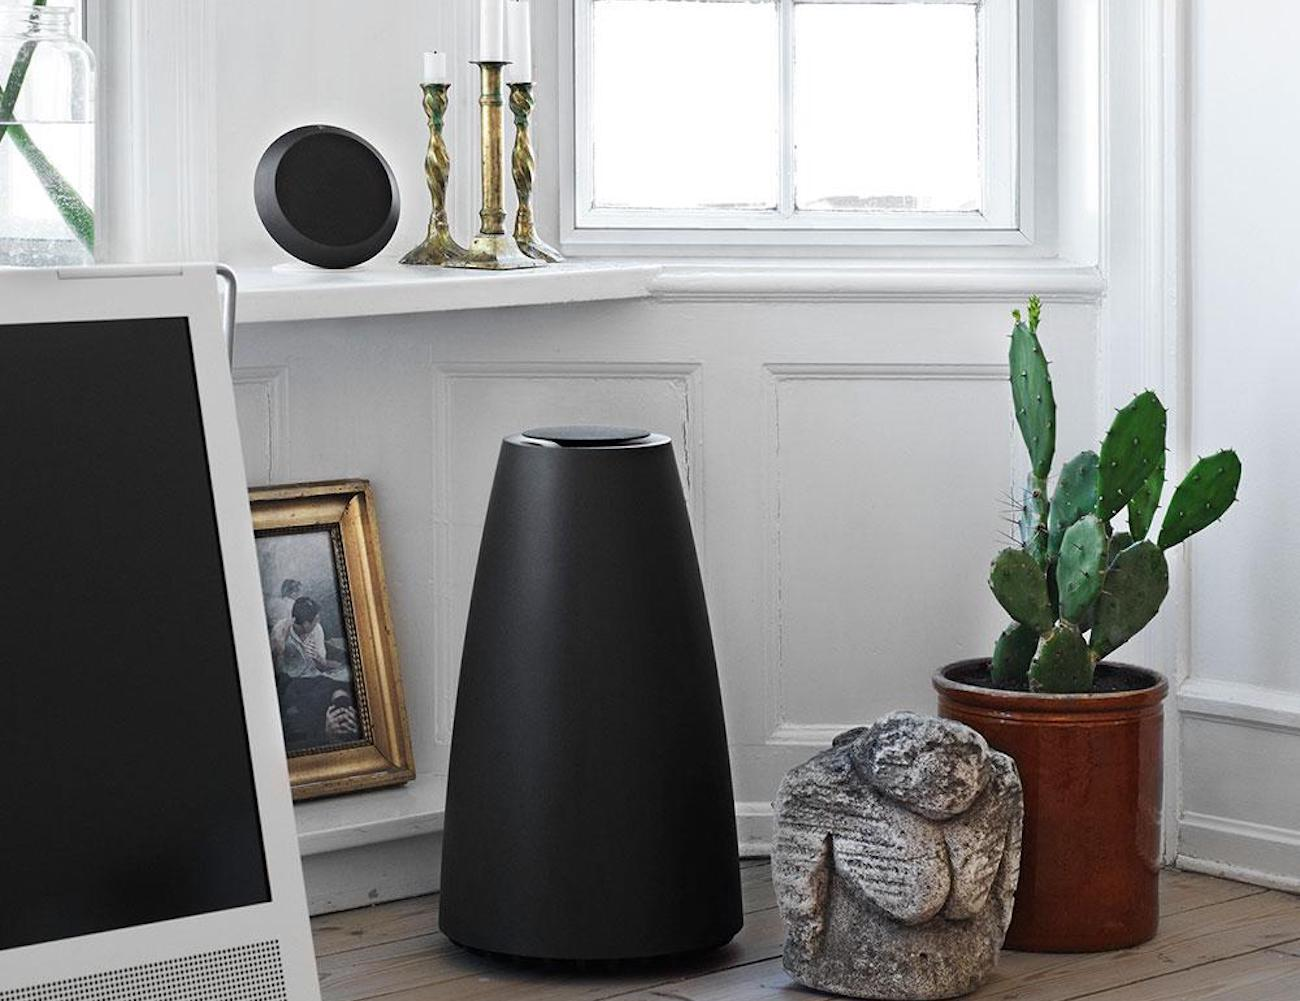 Beoplay S8 Subwoofer Audio System